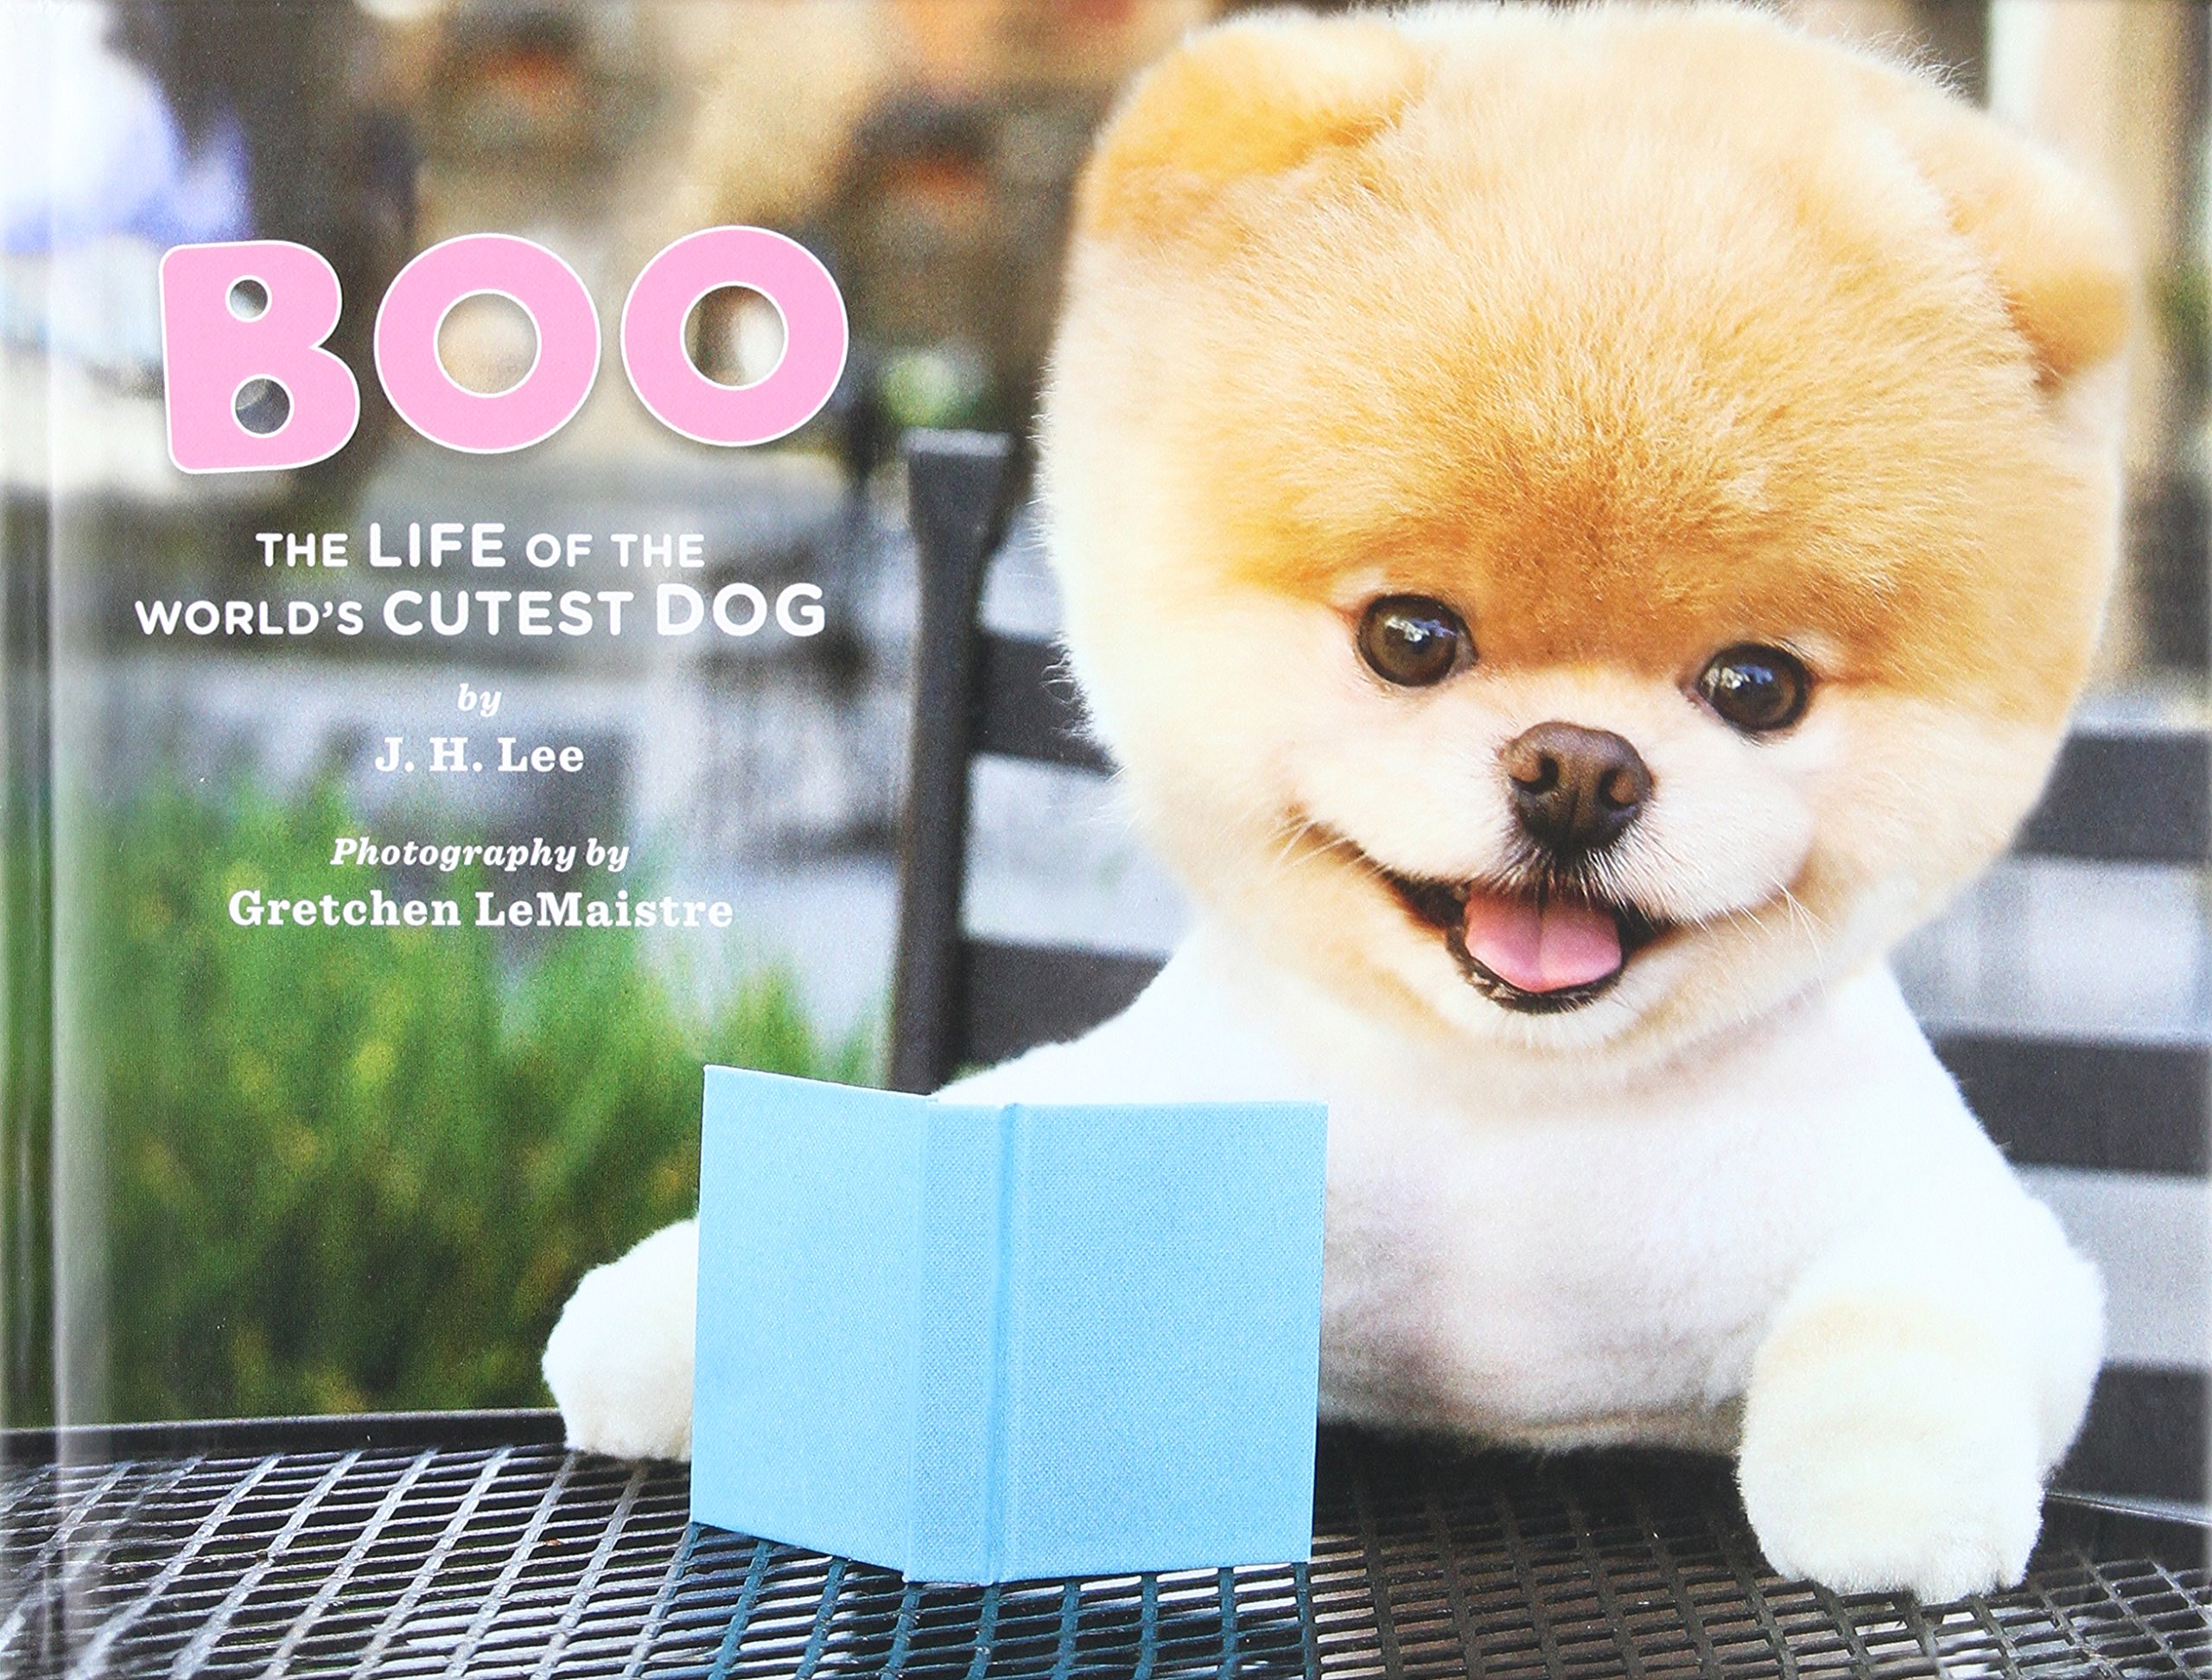 Amazon Com Boo The Life Of The World S Cutest Dog Halloween Books For Kids Halloween Books For Toddlers Cute Halloween Stories 9781452103068 Lee J H Lemaistre Gretchen Books